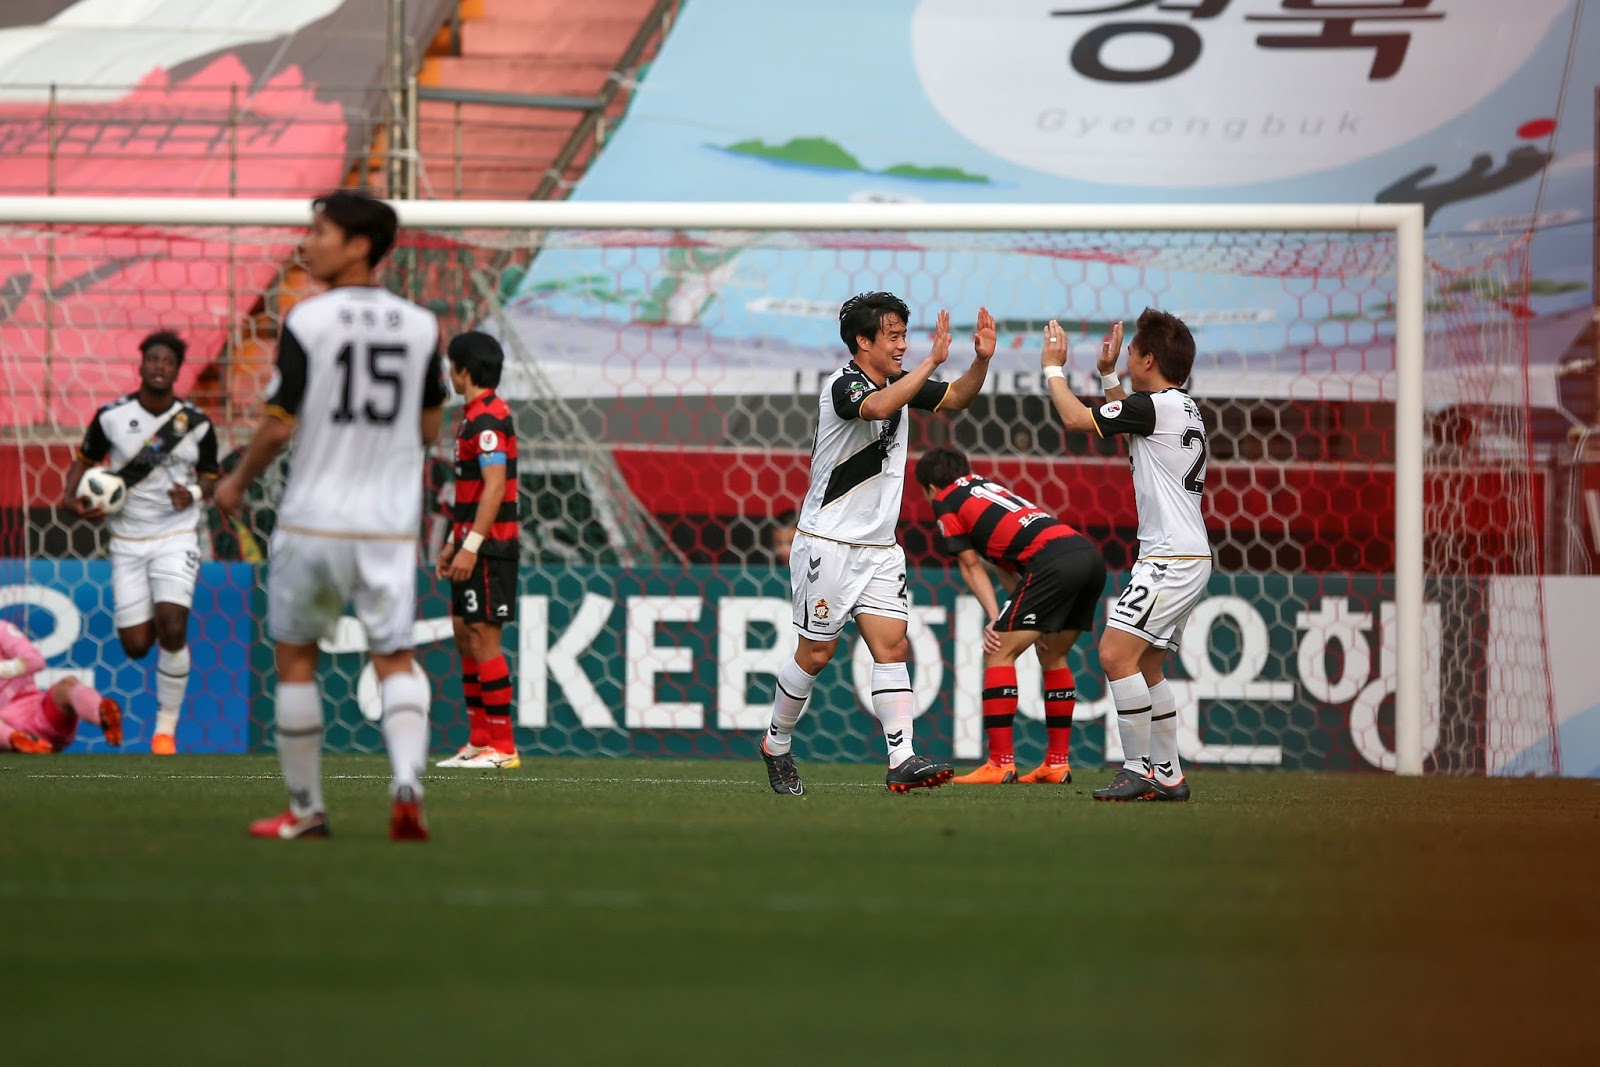 Are Gyeongnam FC the most exciting team to watch in K League 1 in 2018?